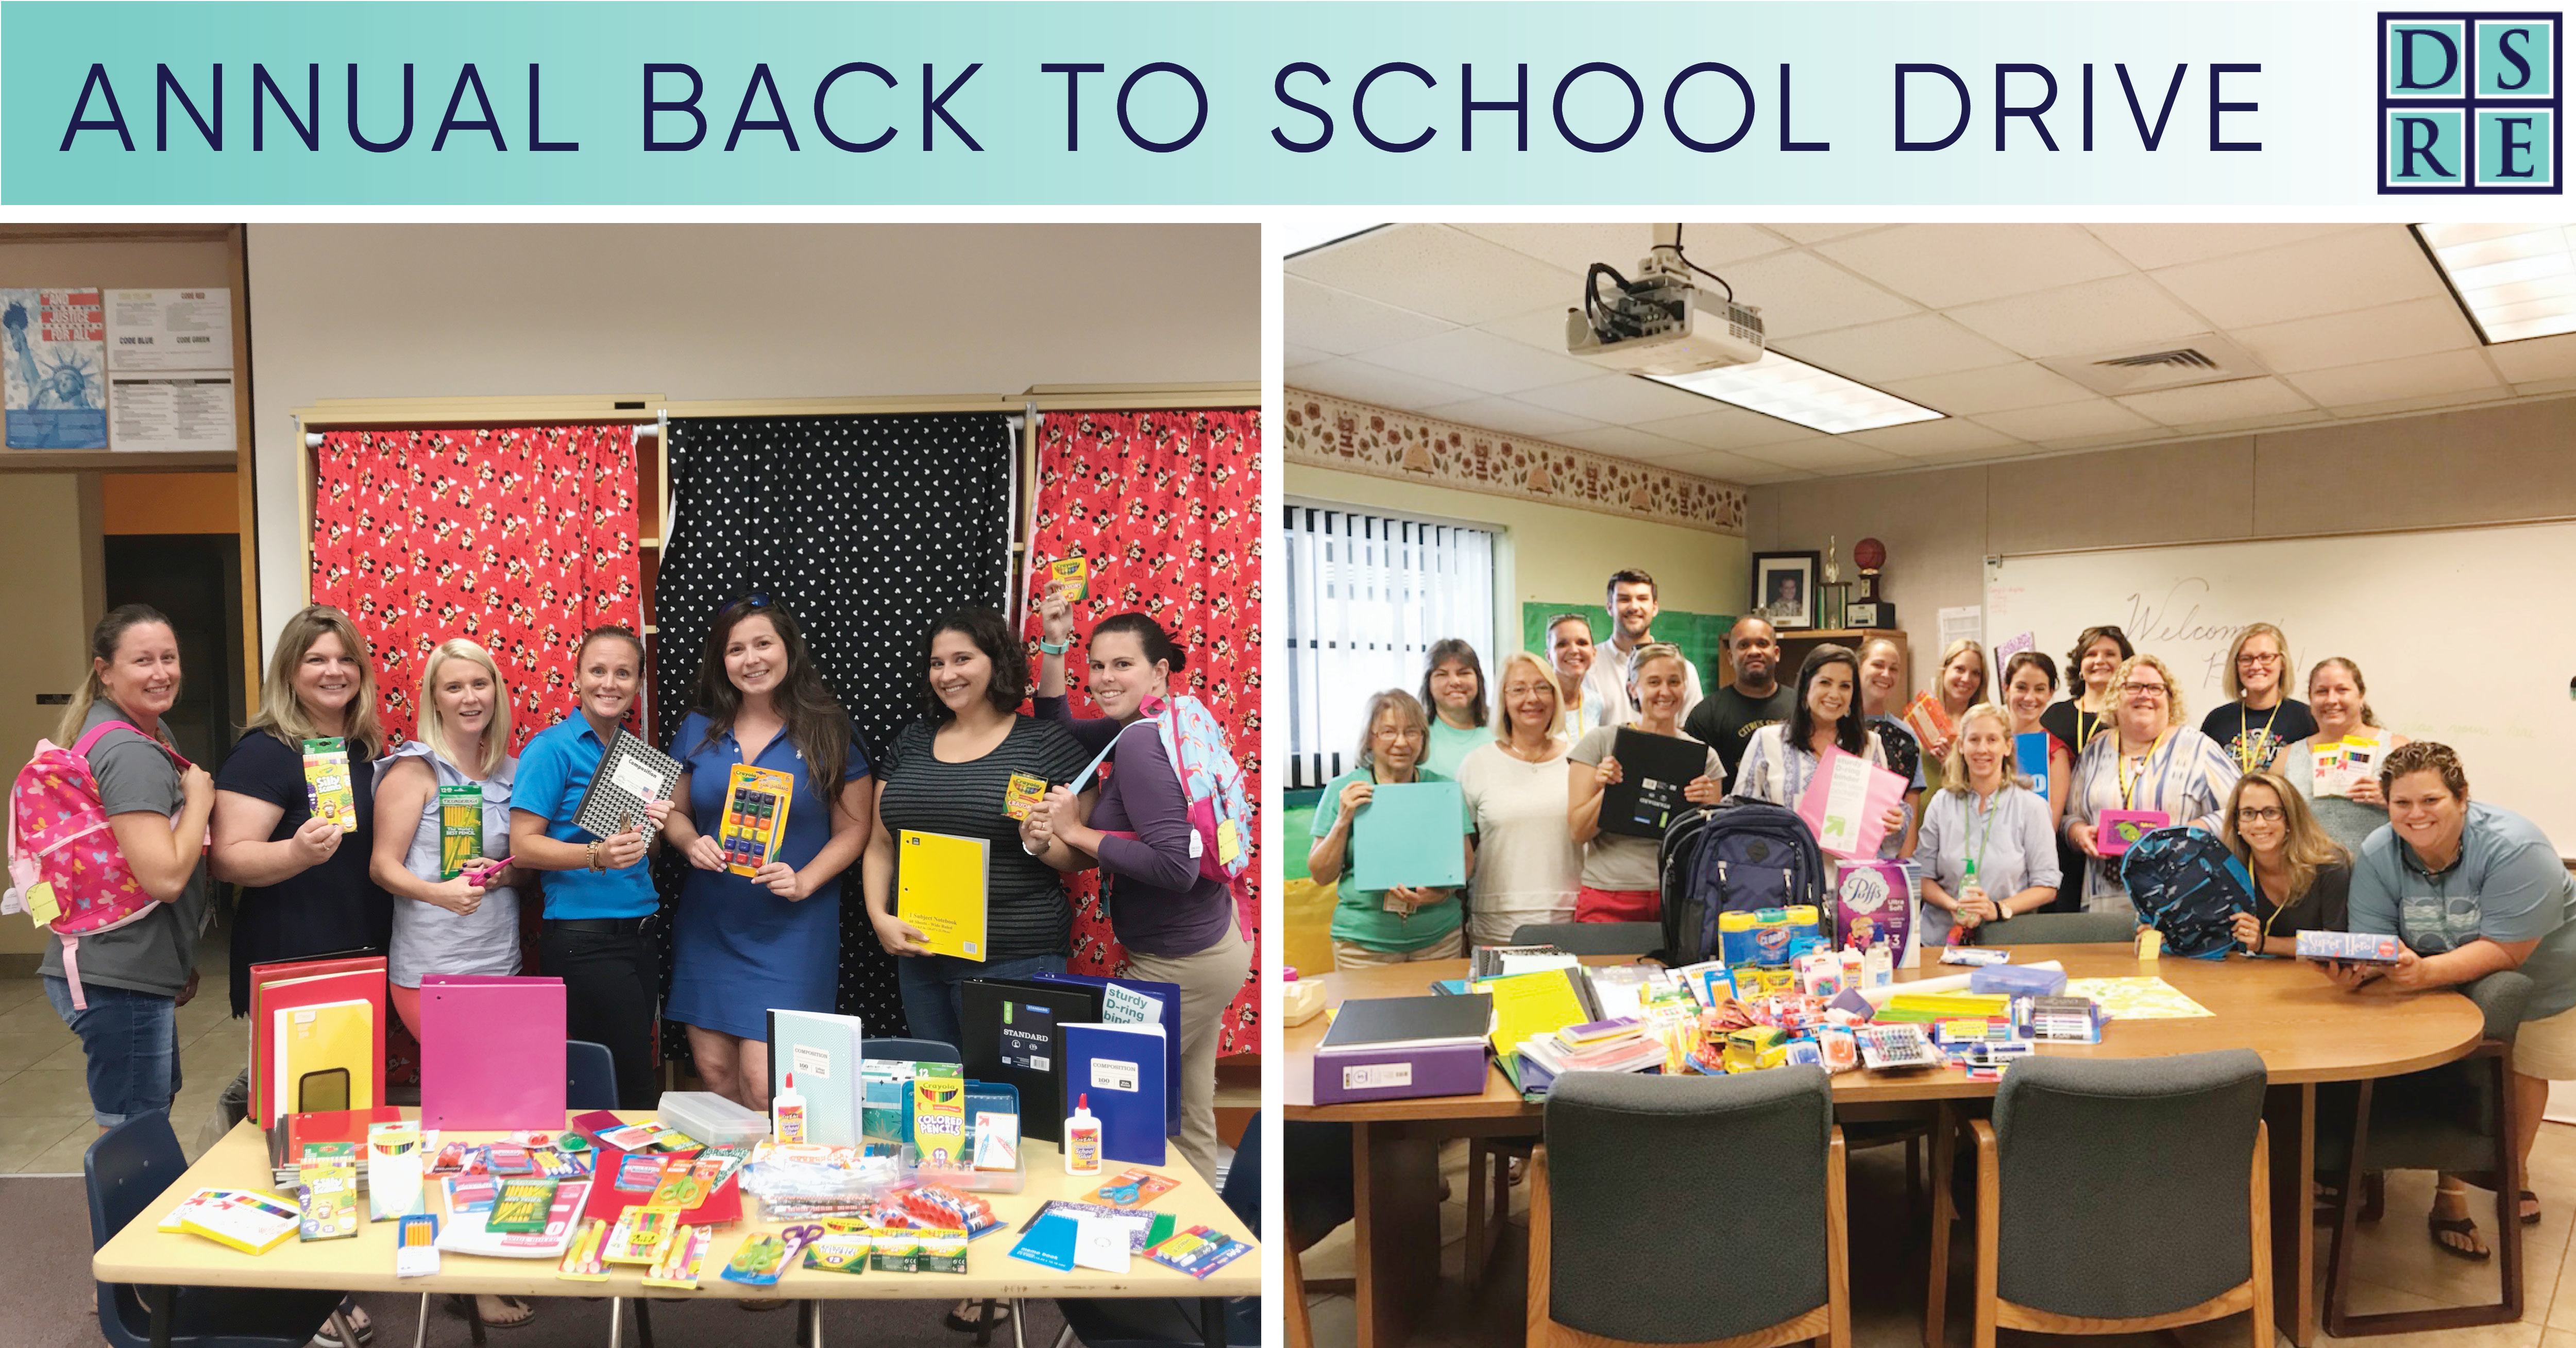 Annual Back To School Drive